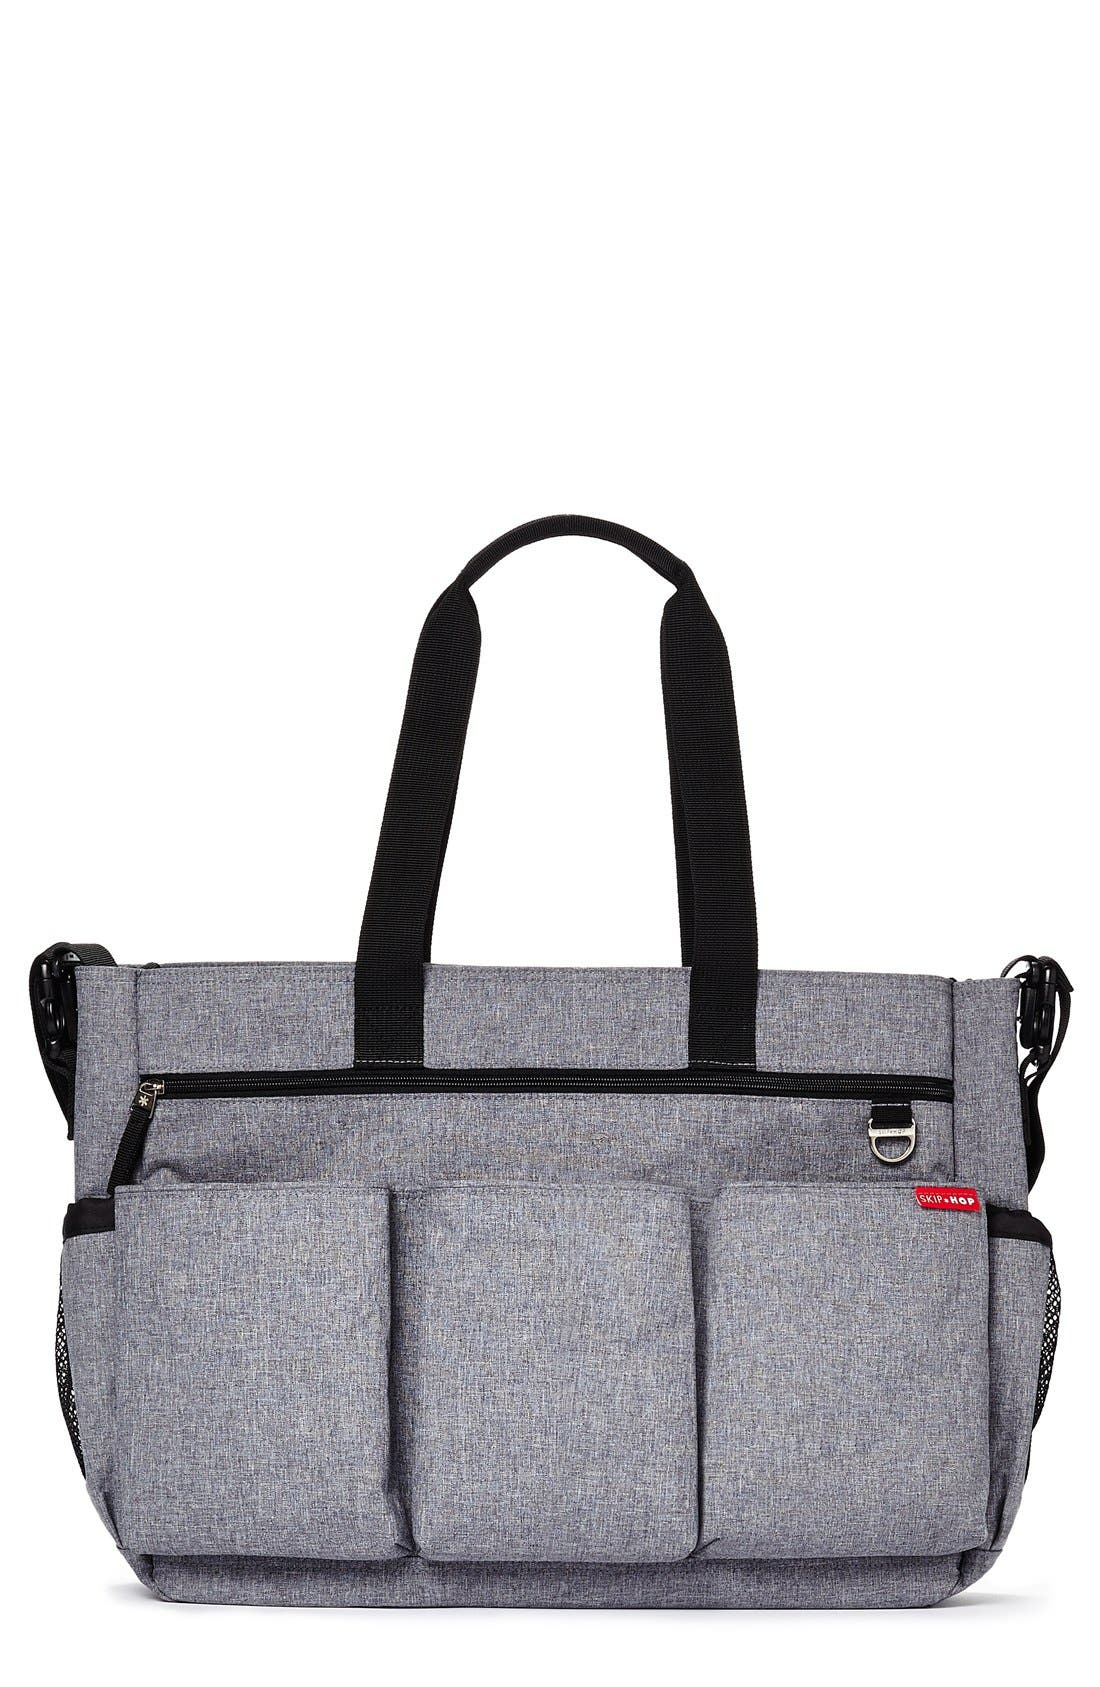 Main Image - Skip Hop 'Duo Double Signature' Diaper Bag